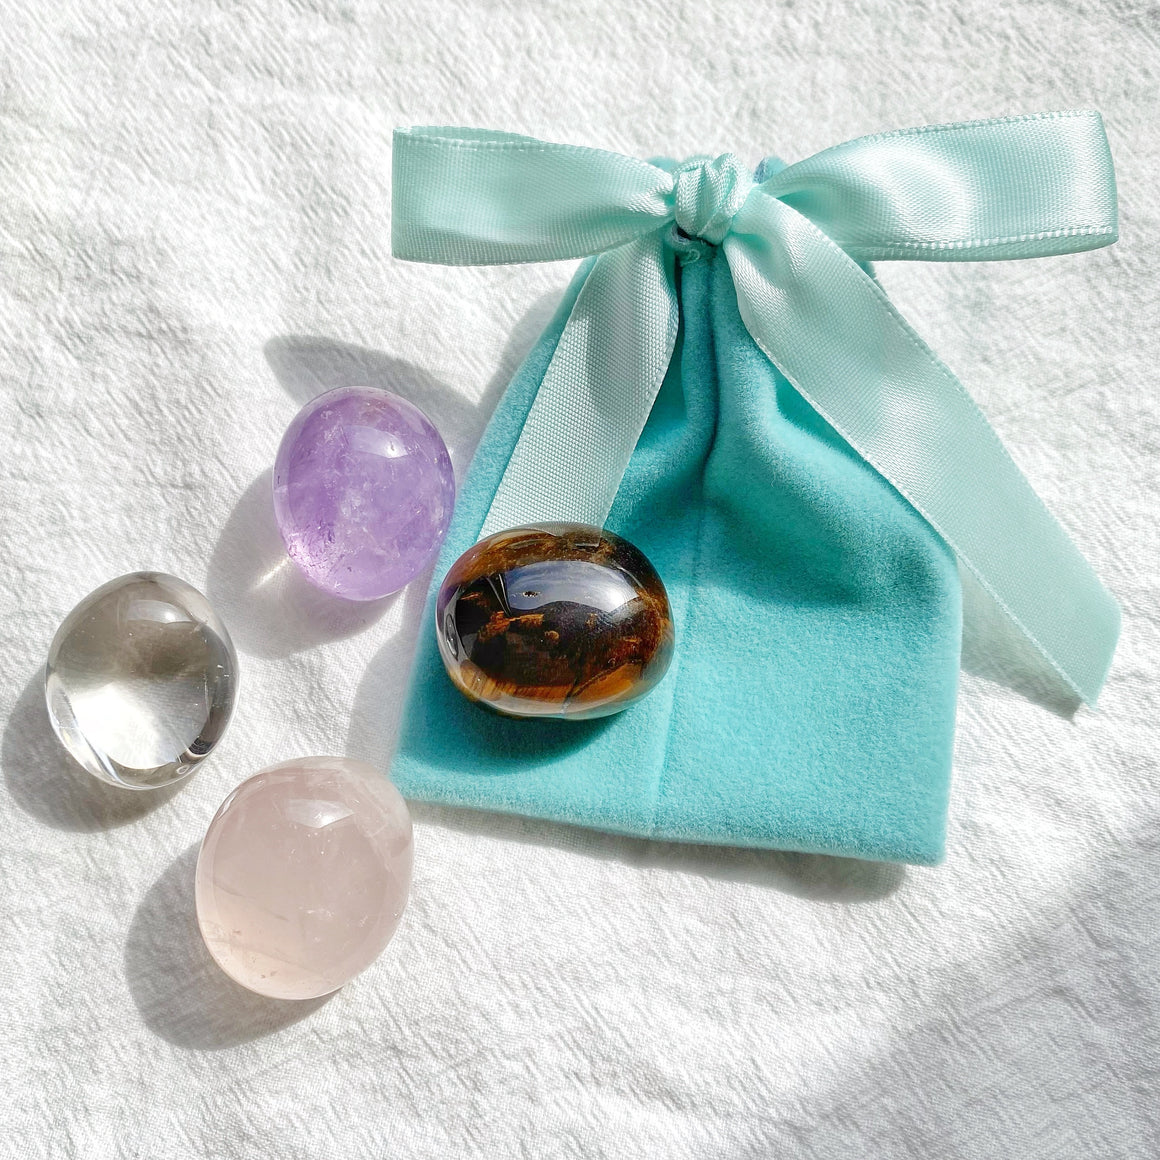 Starter Kit Tumbled Crystal Bag